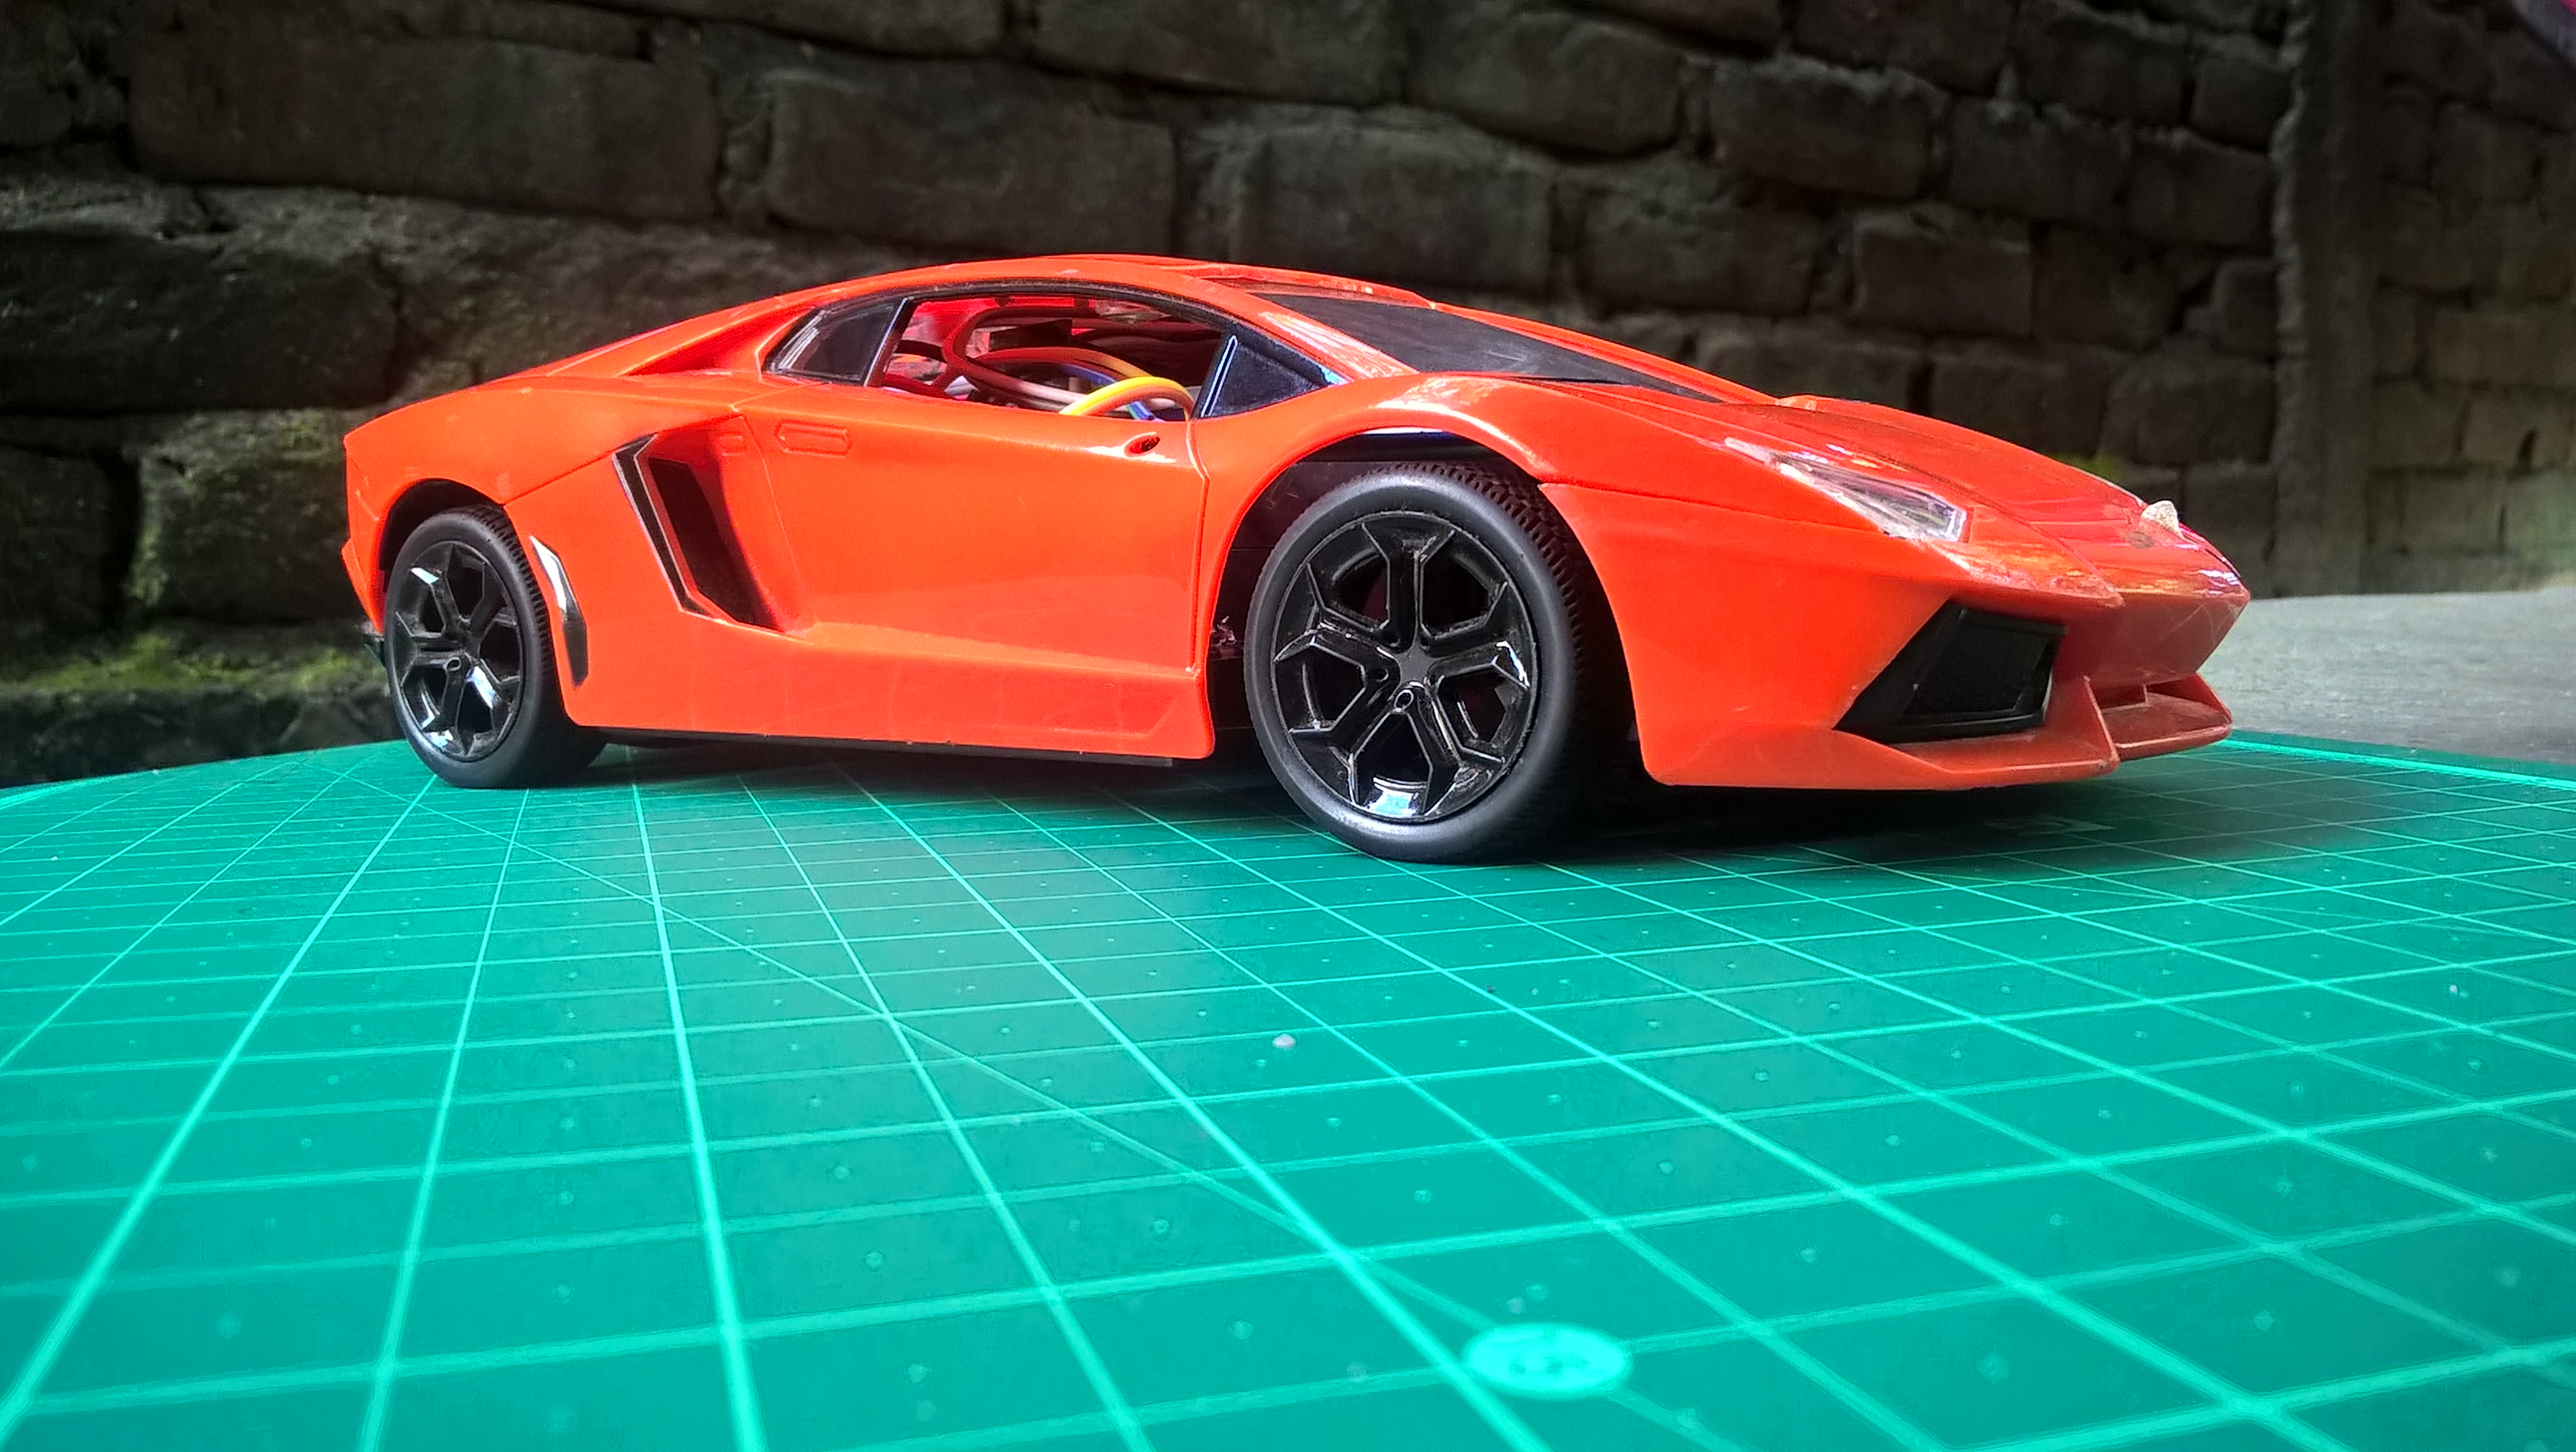 Picture of How to Make a DIY Smartphone Controlled RC Car